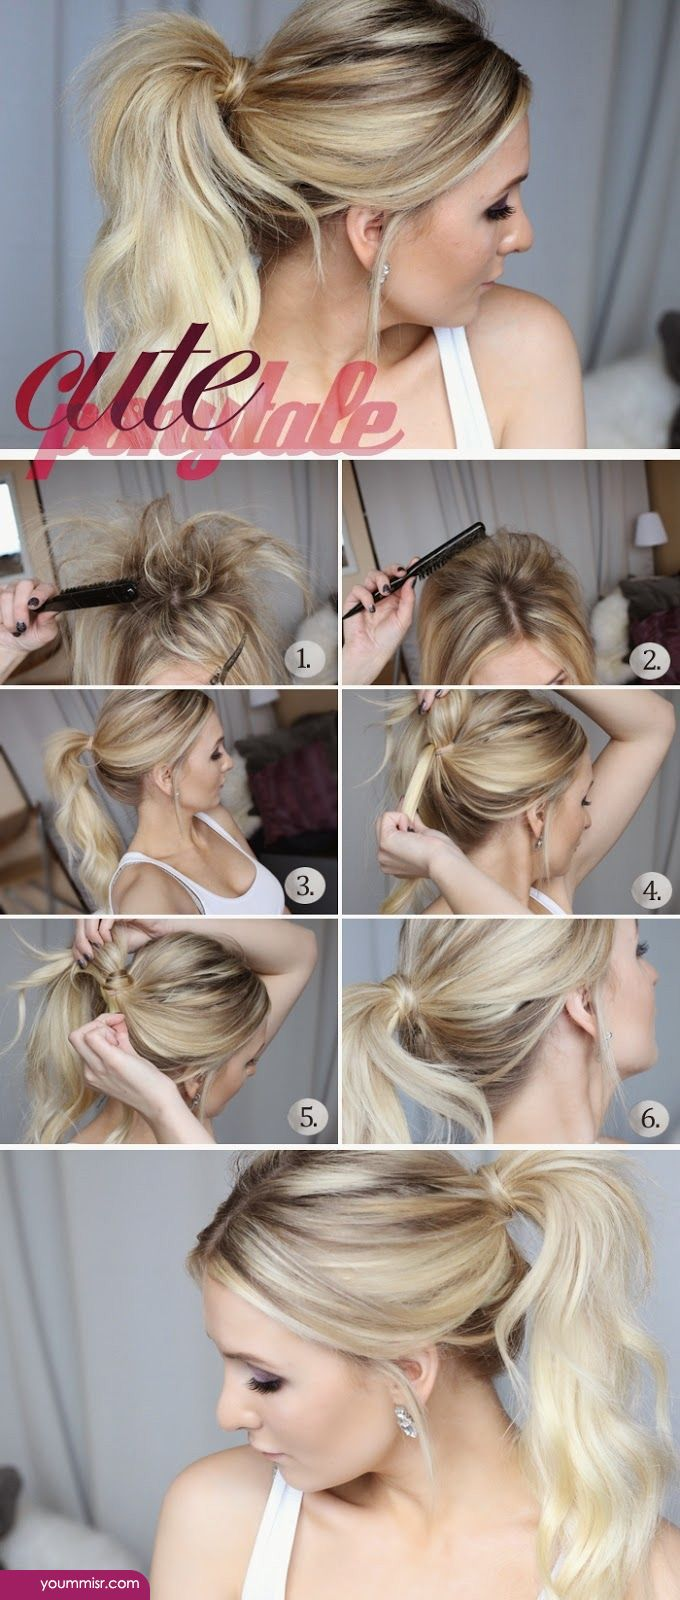 Groovy Cool Easy Hairstyles 2015 2016 Step By Step Youtube Hairstyle Inspiration Daily Dogsangcom